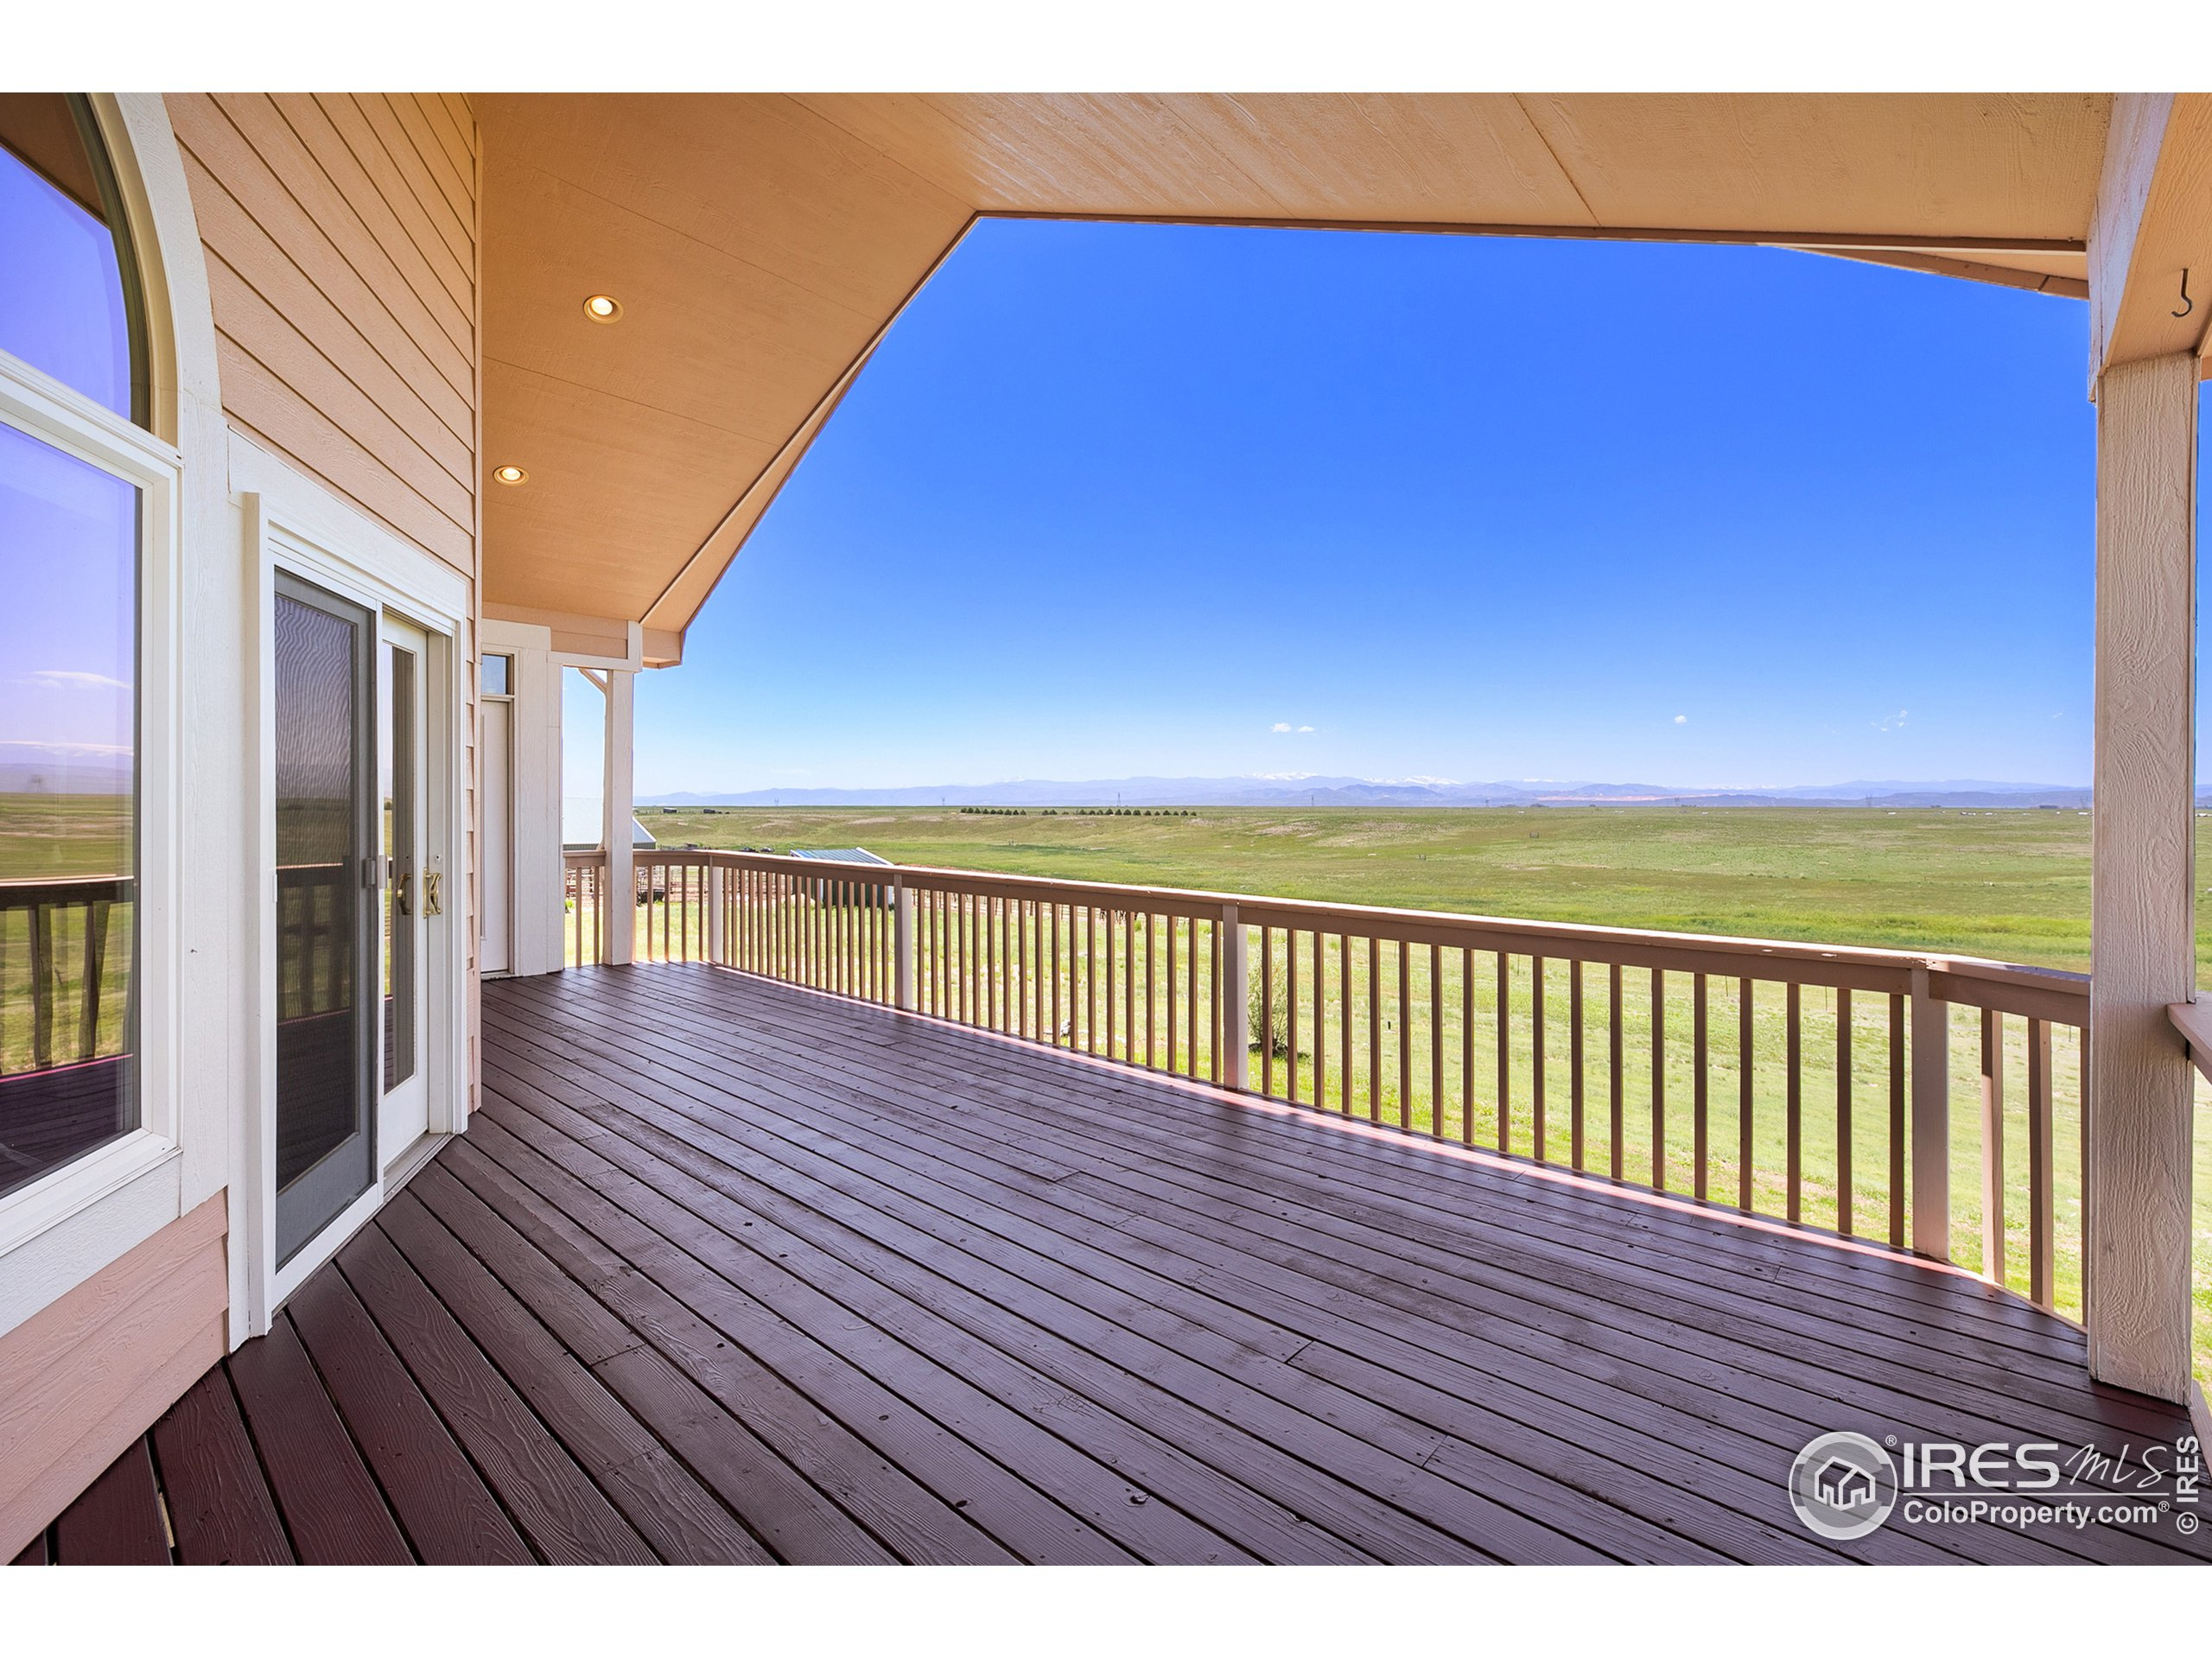 upstairs covered deck looking Southwest with outrageous mountain views!